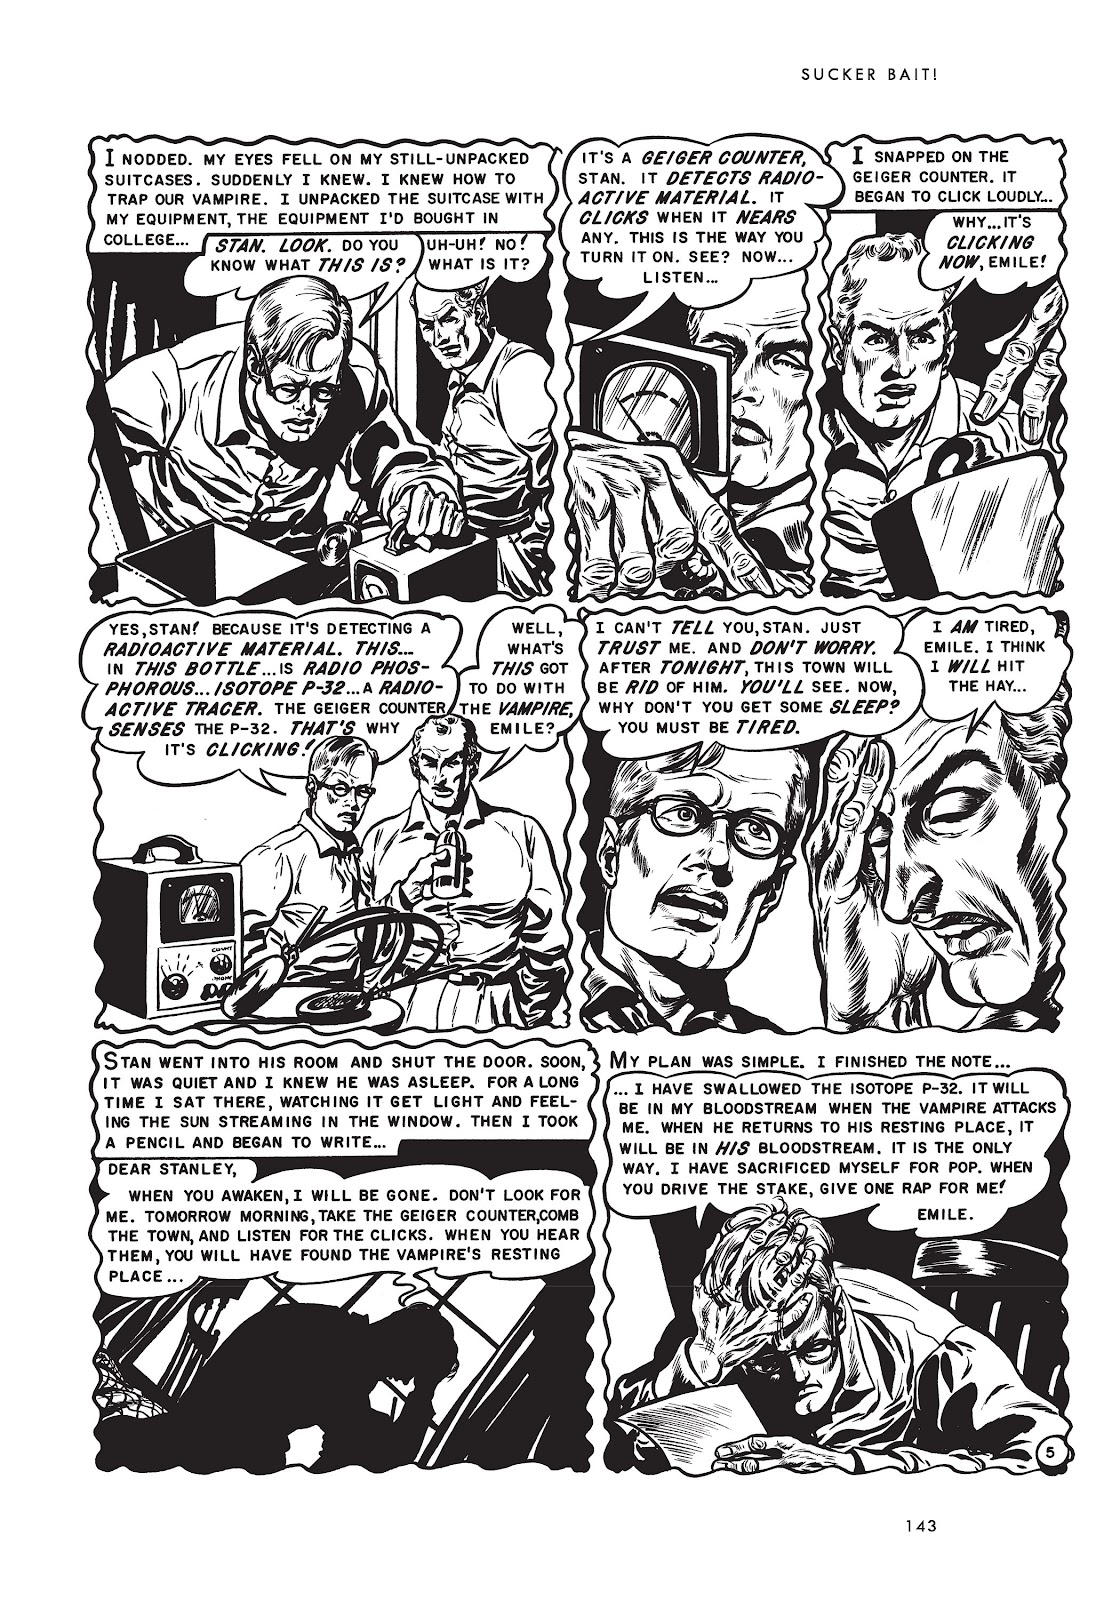 Read online Sucker Bait and Other Stories comic -  Issue # TPB (Part 2) - 58